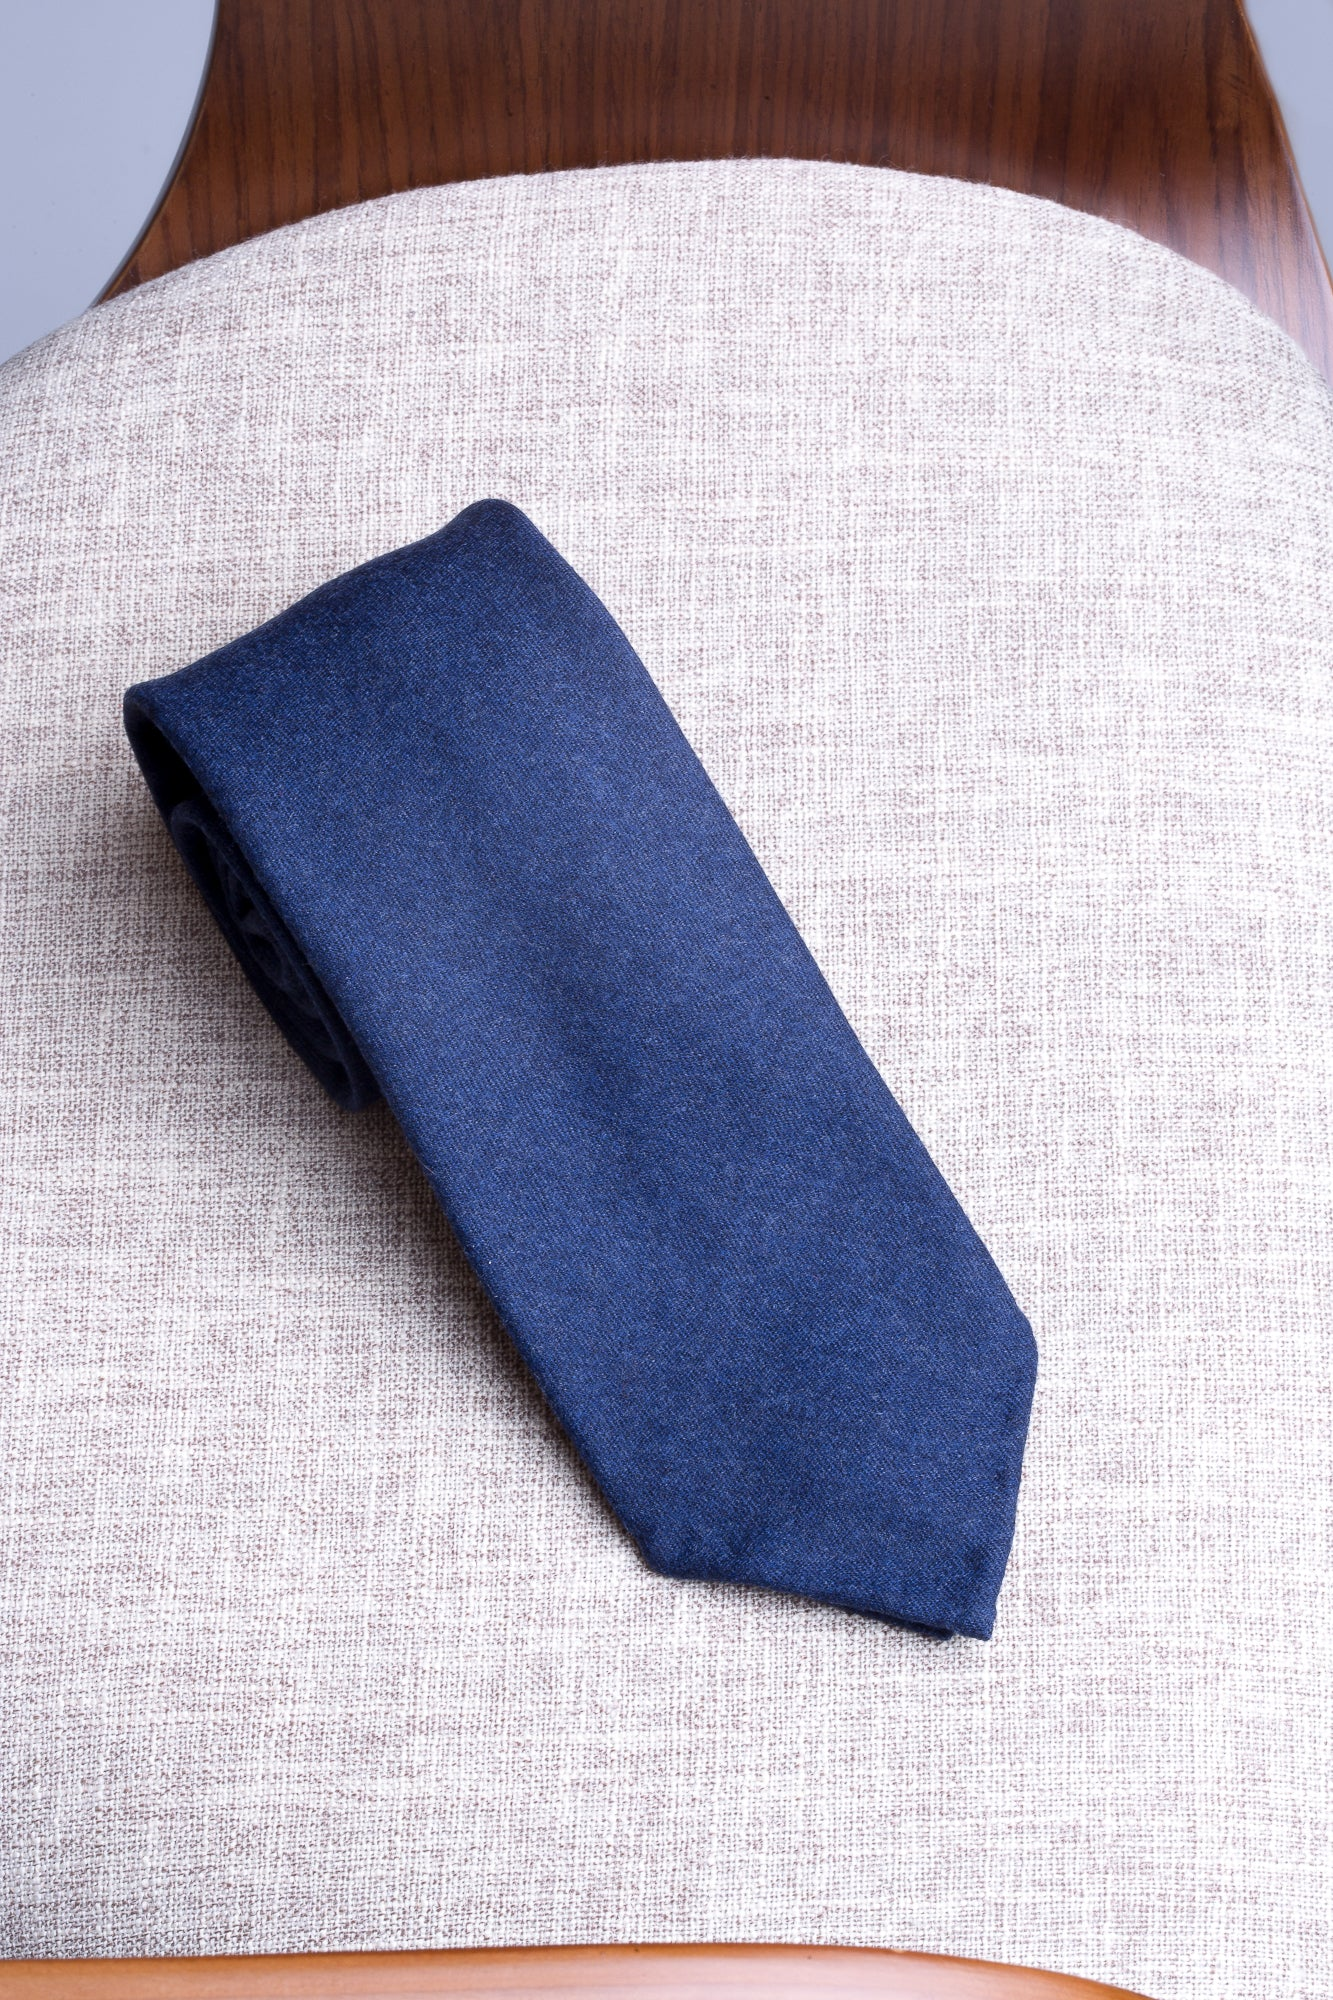 Avio flannel tie - Hand Made In Italy